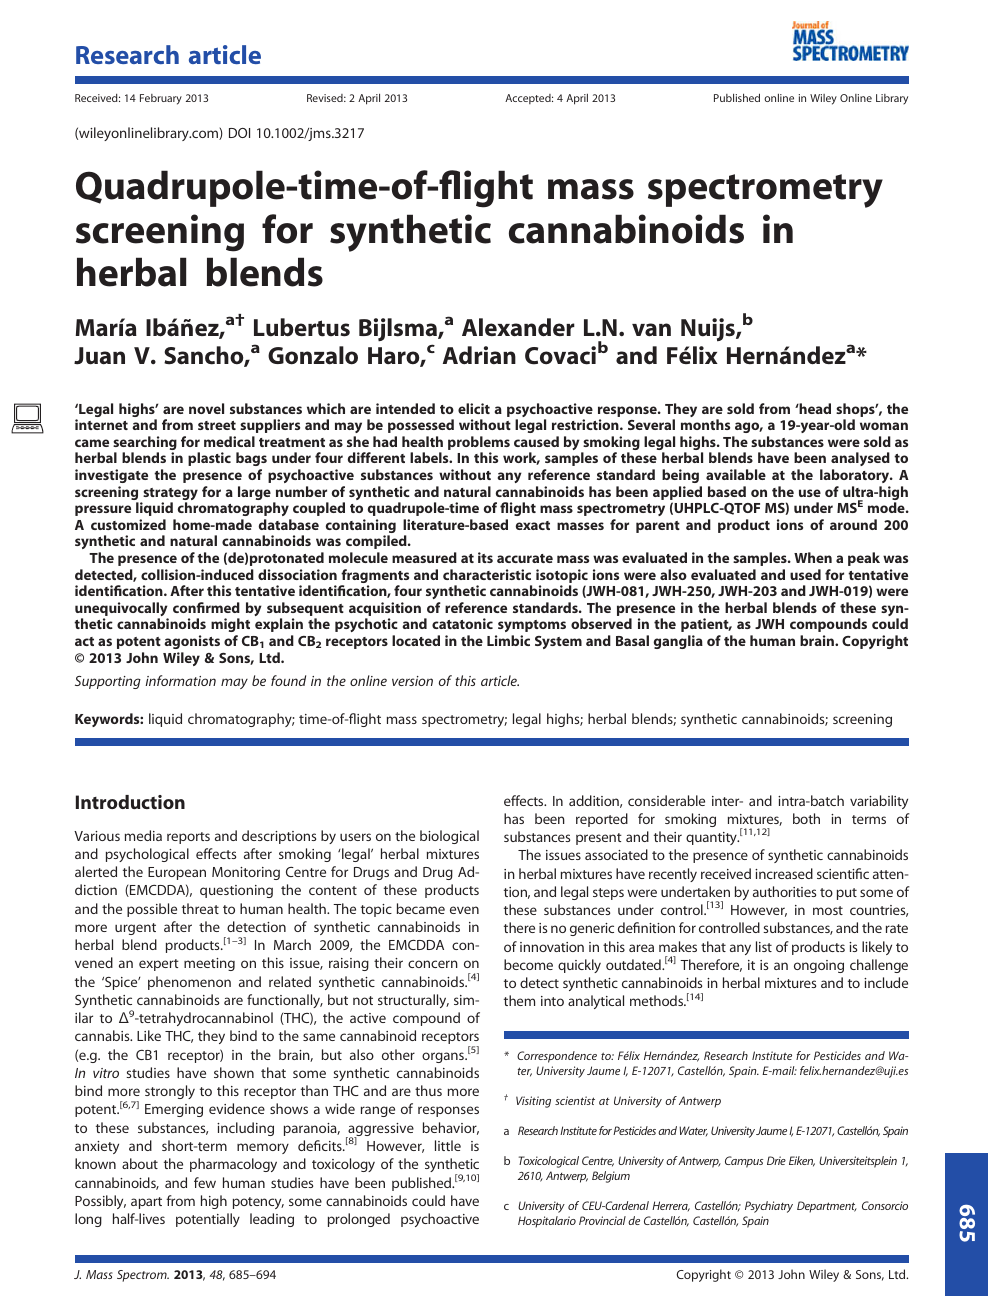 Quadrupole-time-of-flight mass spectrometry screening for synthetic